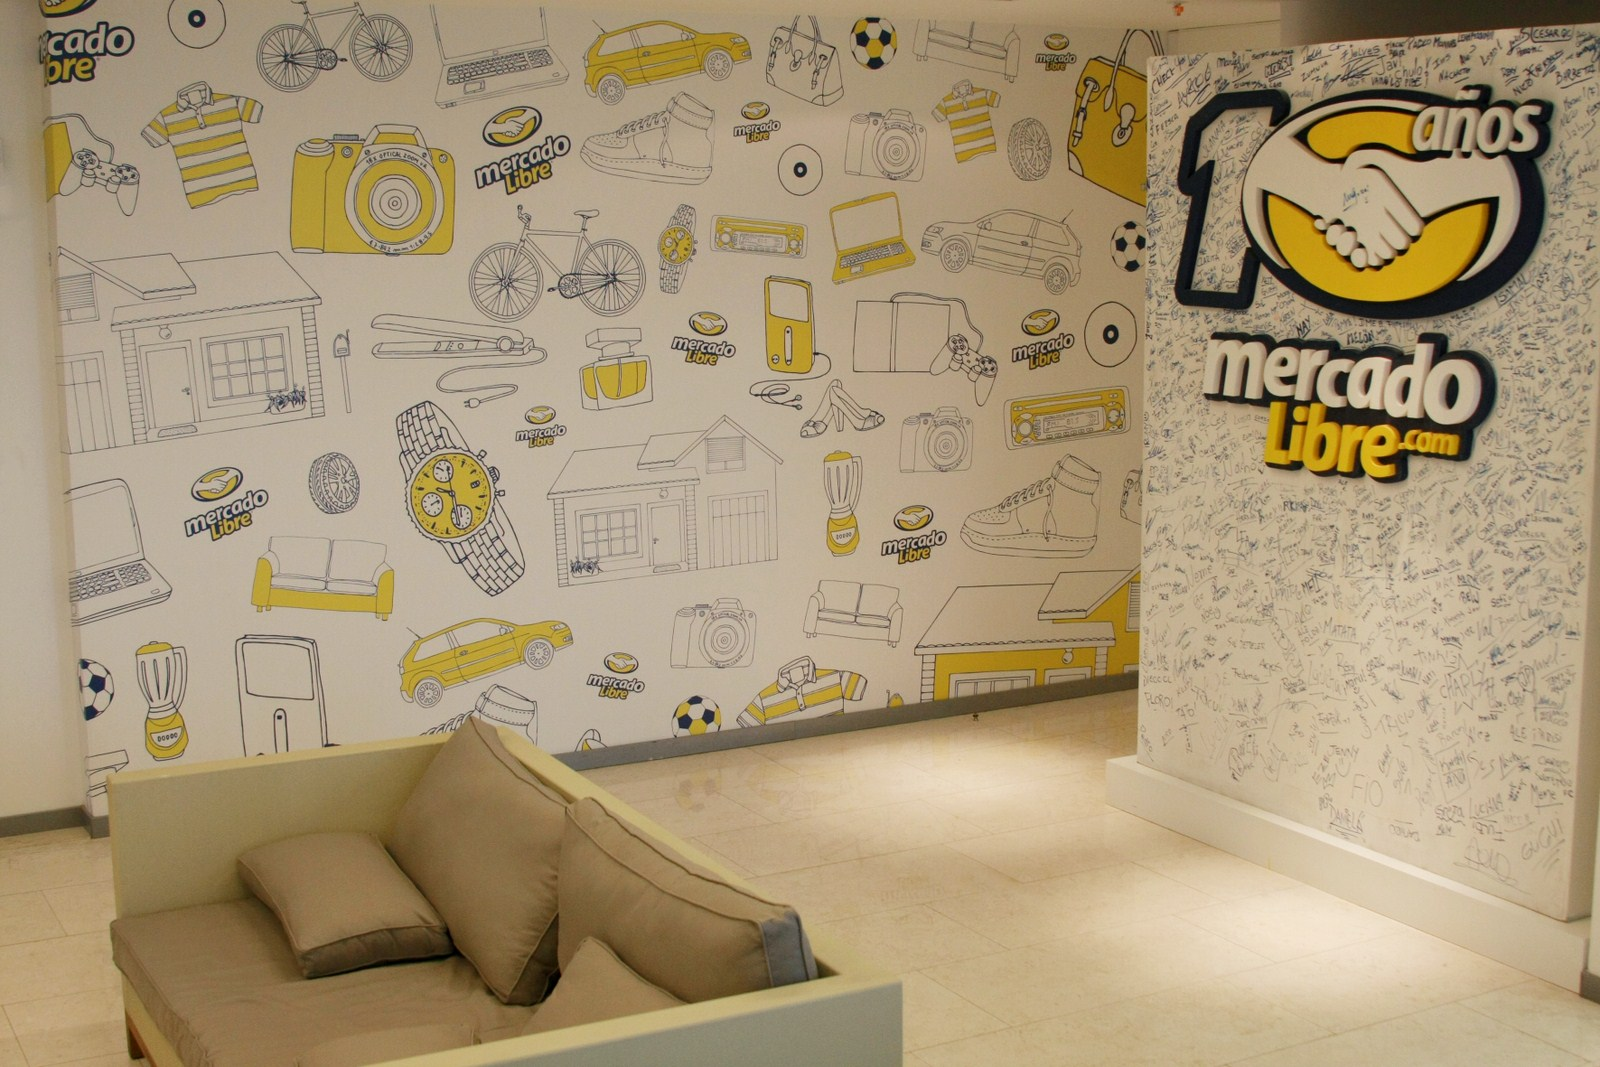 Latin American E-Commerce Site MercadoLibre Creates R&D Center in Silicon Valley, Will Open API